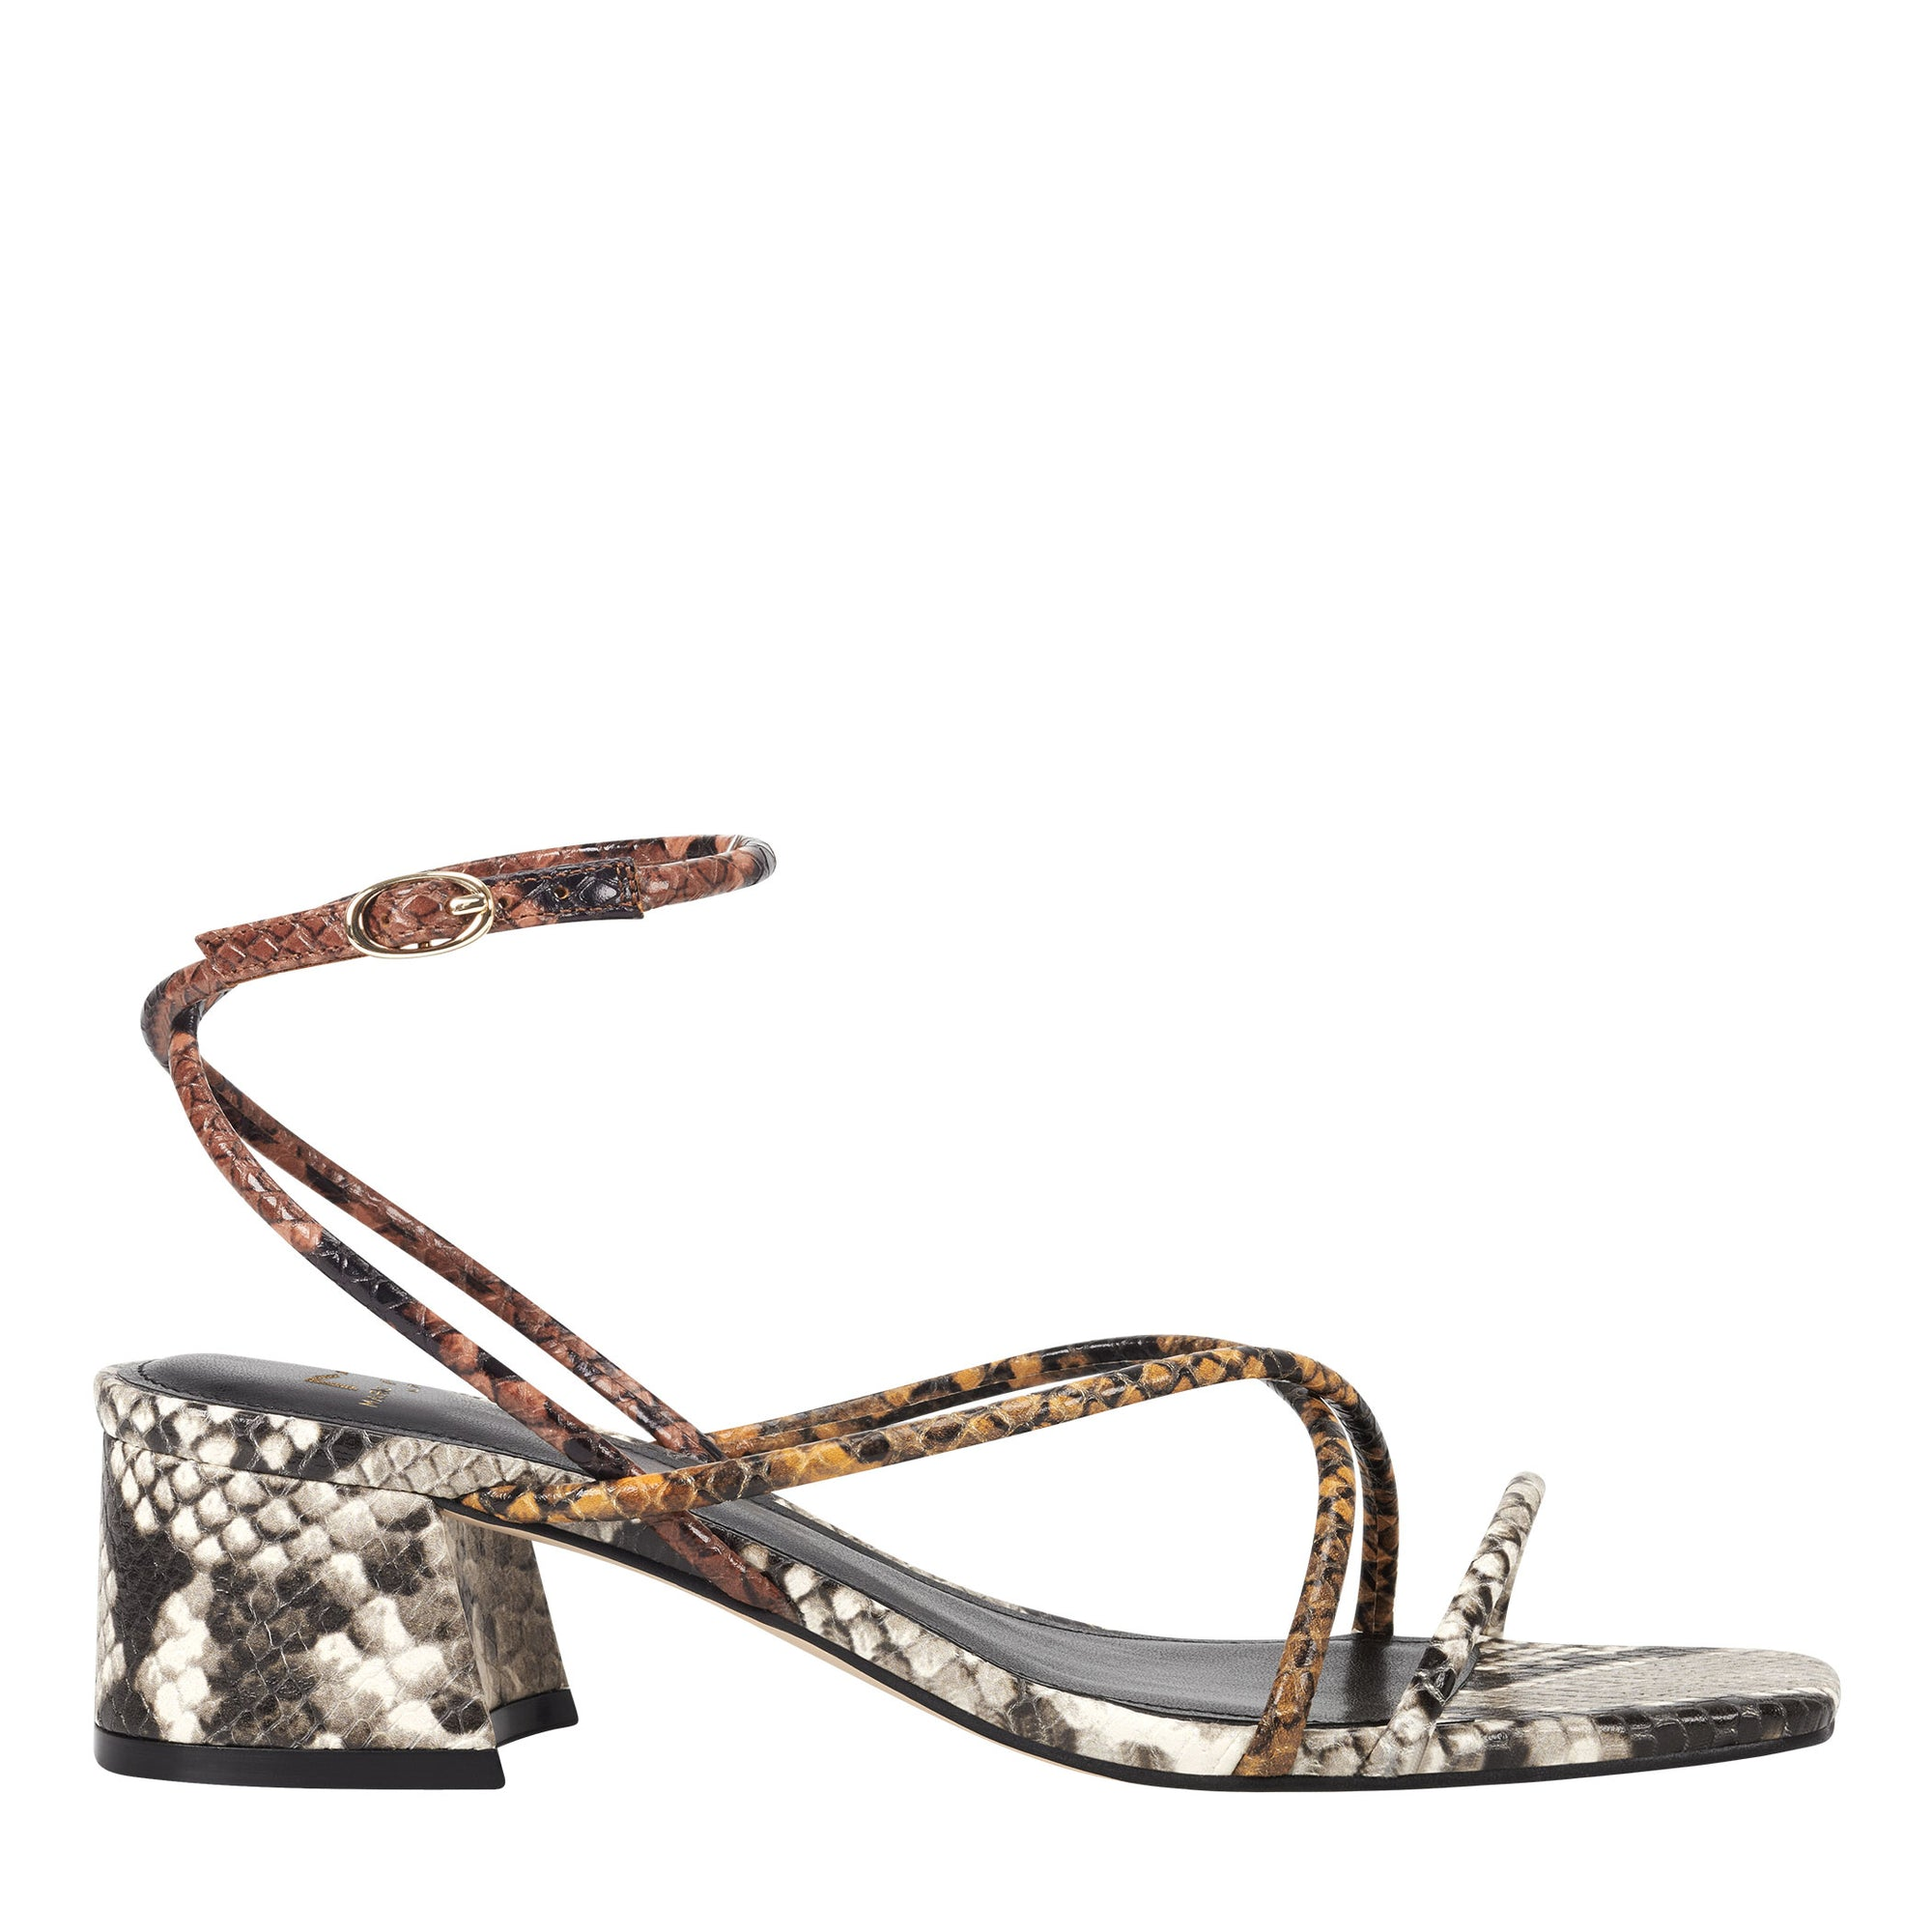 jared-block-heel-strappy-sandal-in-natural-snake-printed-leather